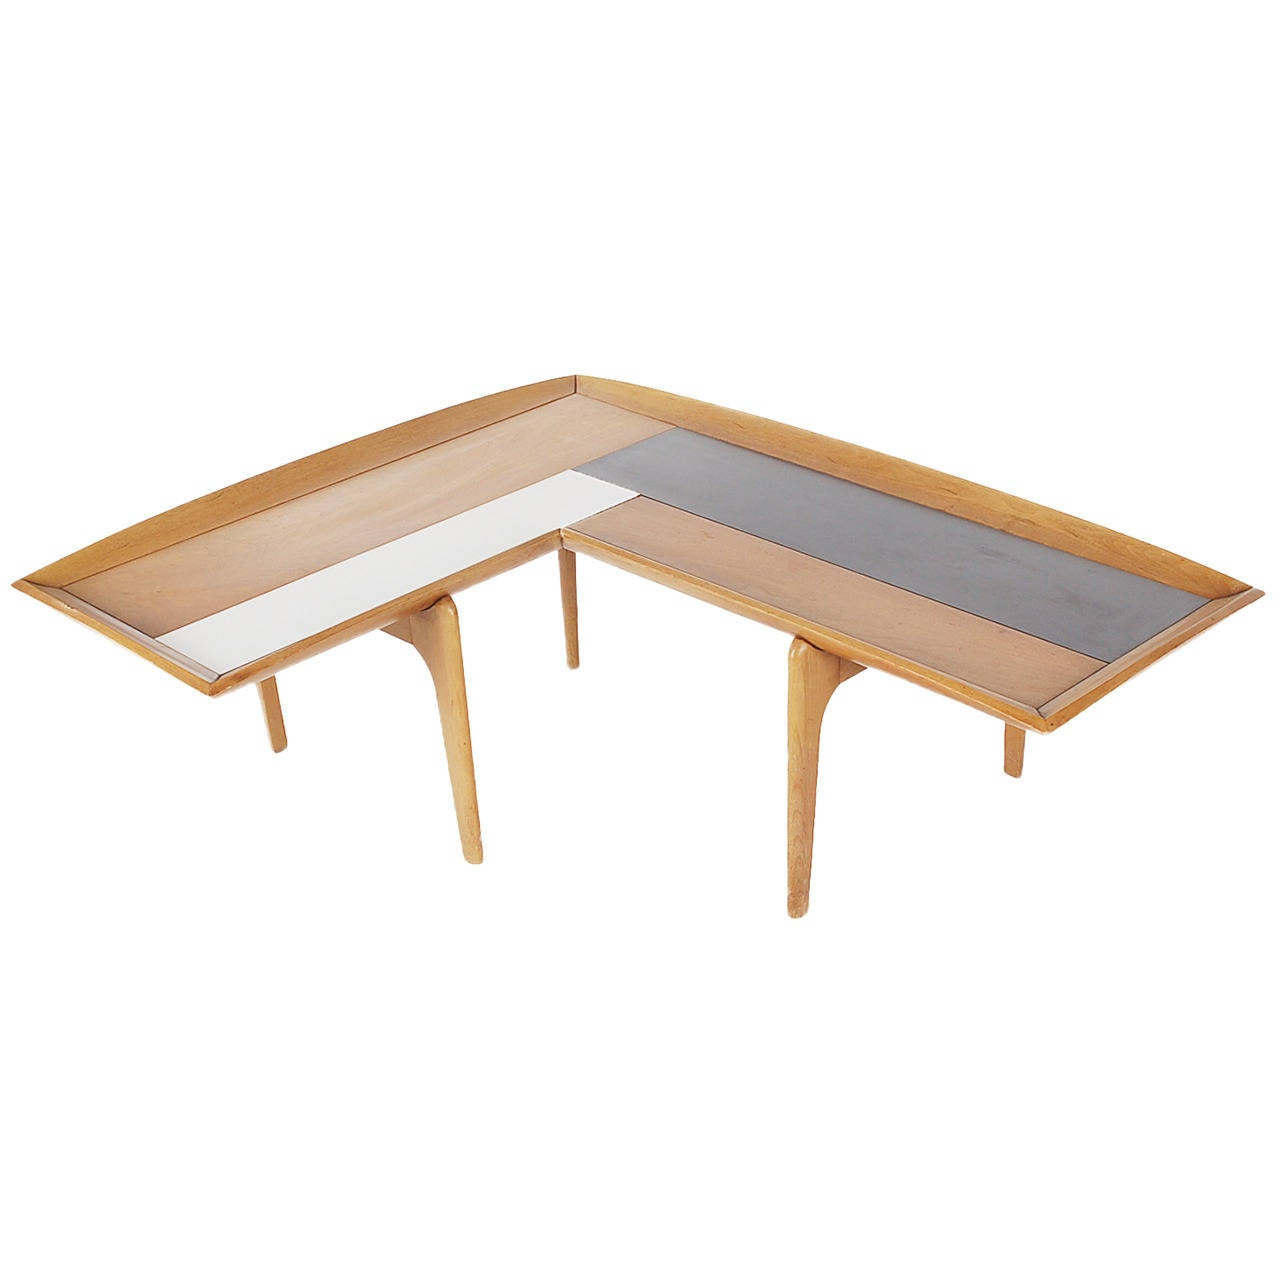 Boomerang Coffee Table Midcentury Walnut Boomerang Coffee Table By John Keal For Sale At